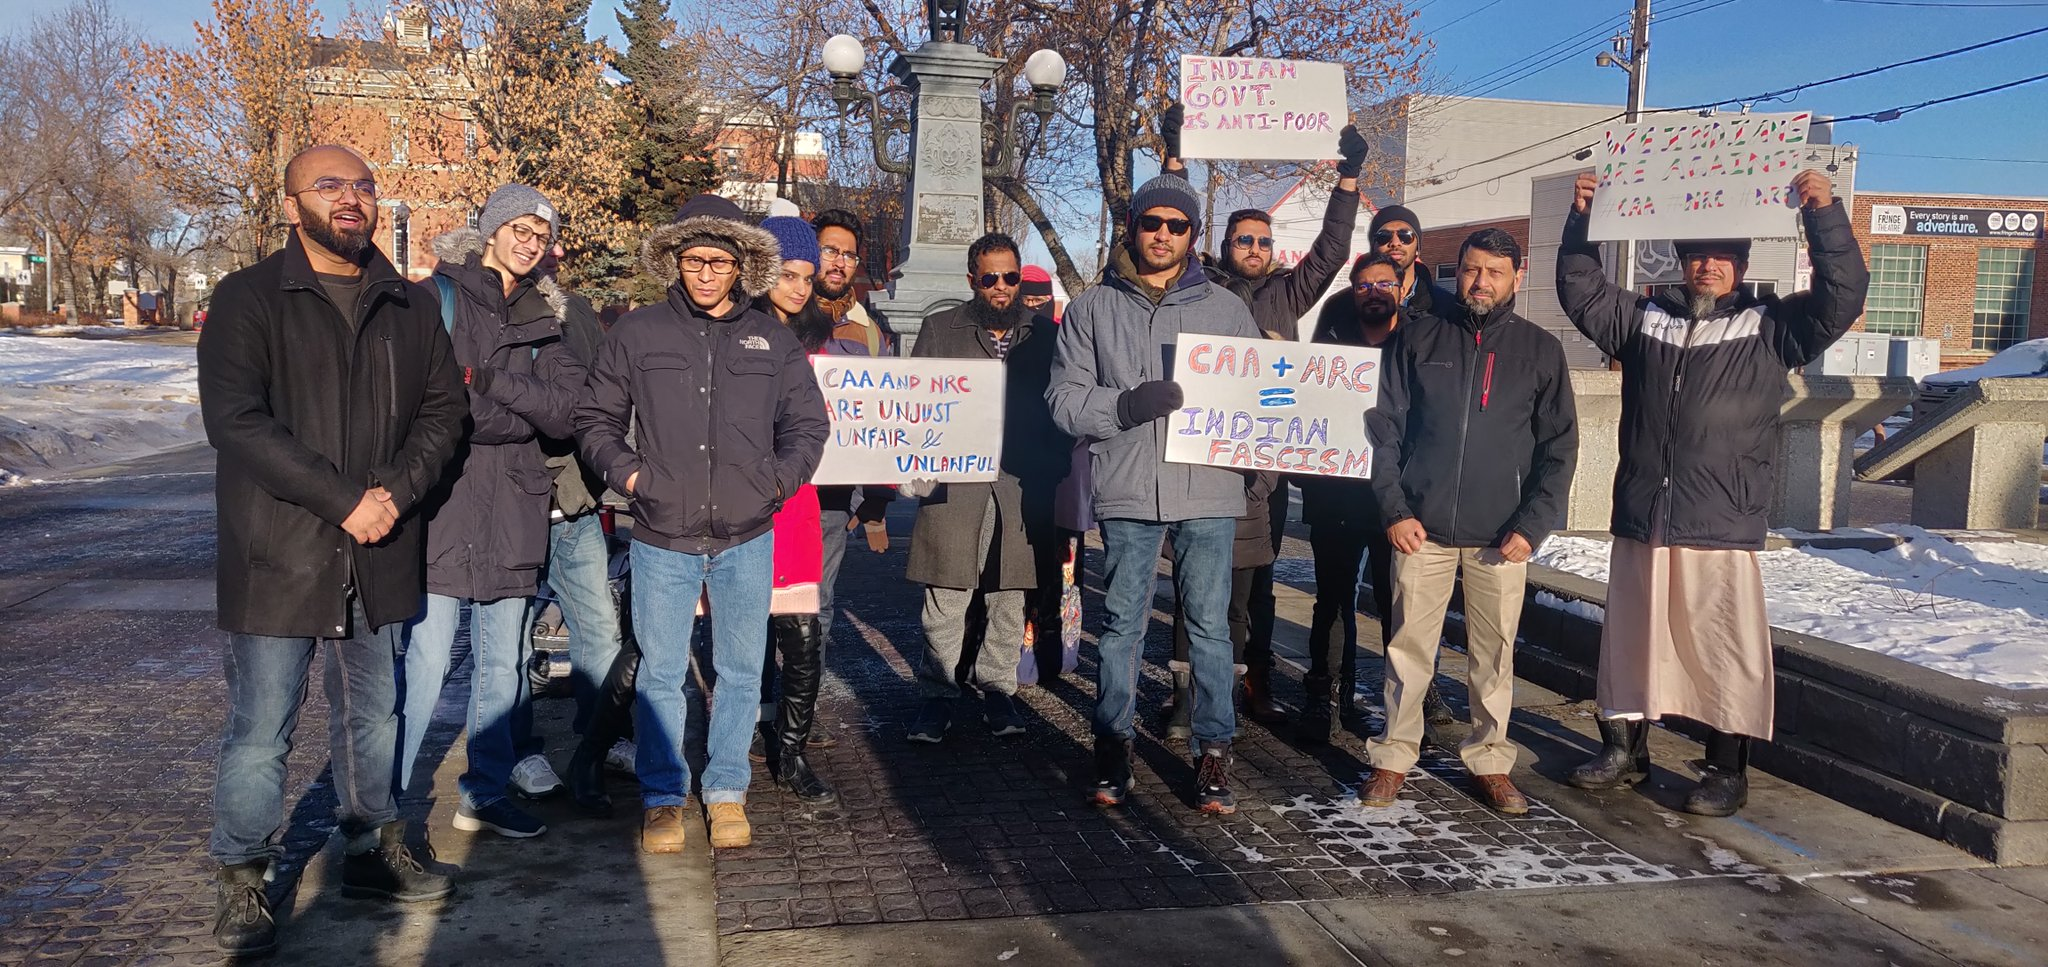 Canada, a popular destination for the Indian diaspora, is also witnessing a series of protests against the CAA and the proposed National Register of Citizens (NRC).